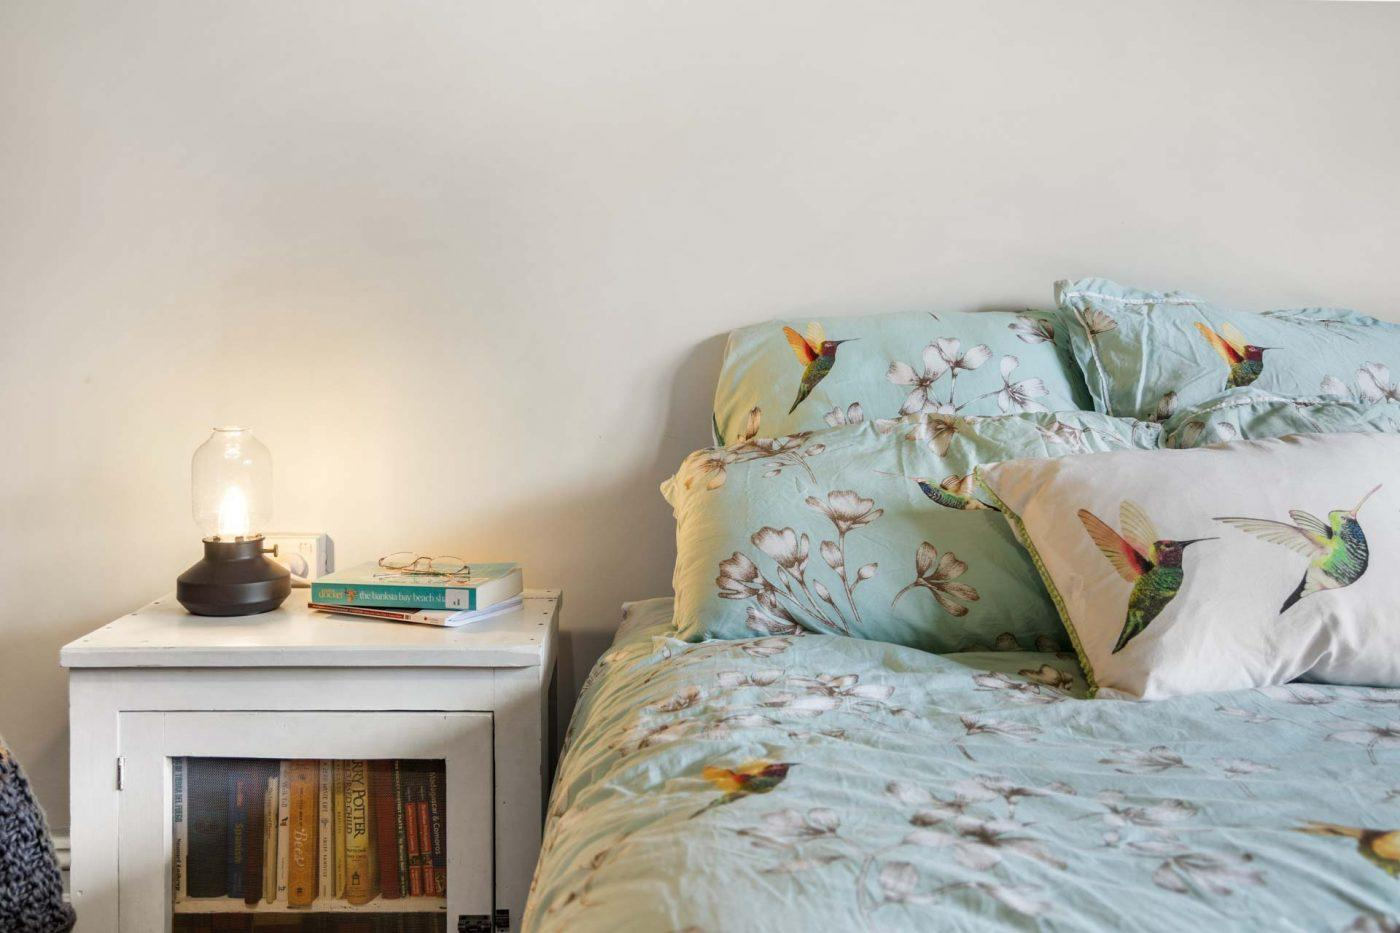 Cosy Bedroom with Unique Bedside Lamp